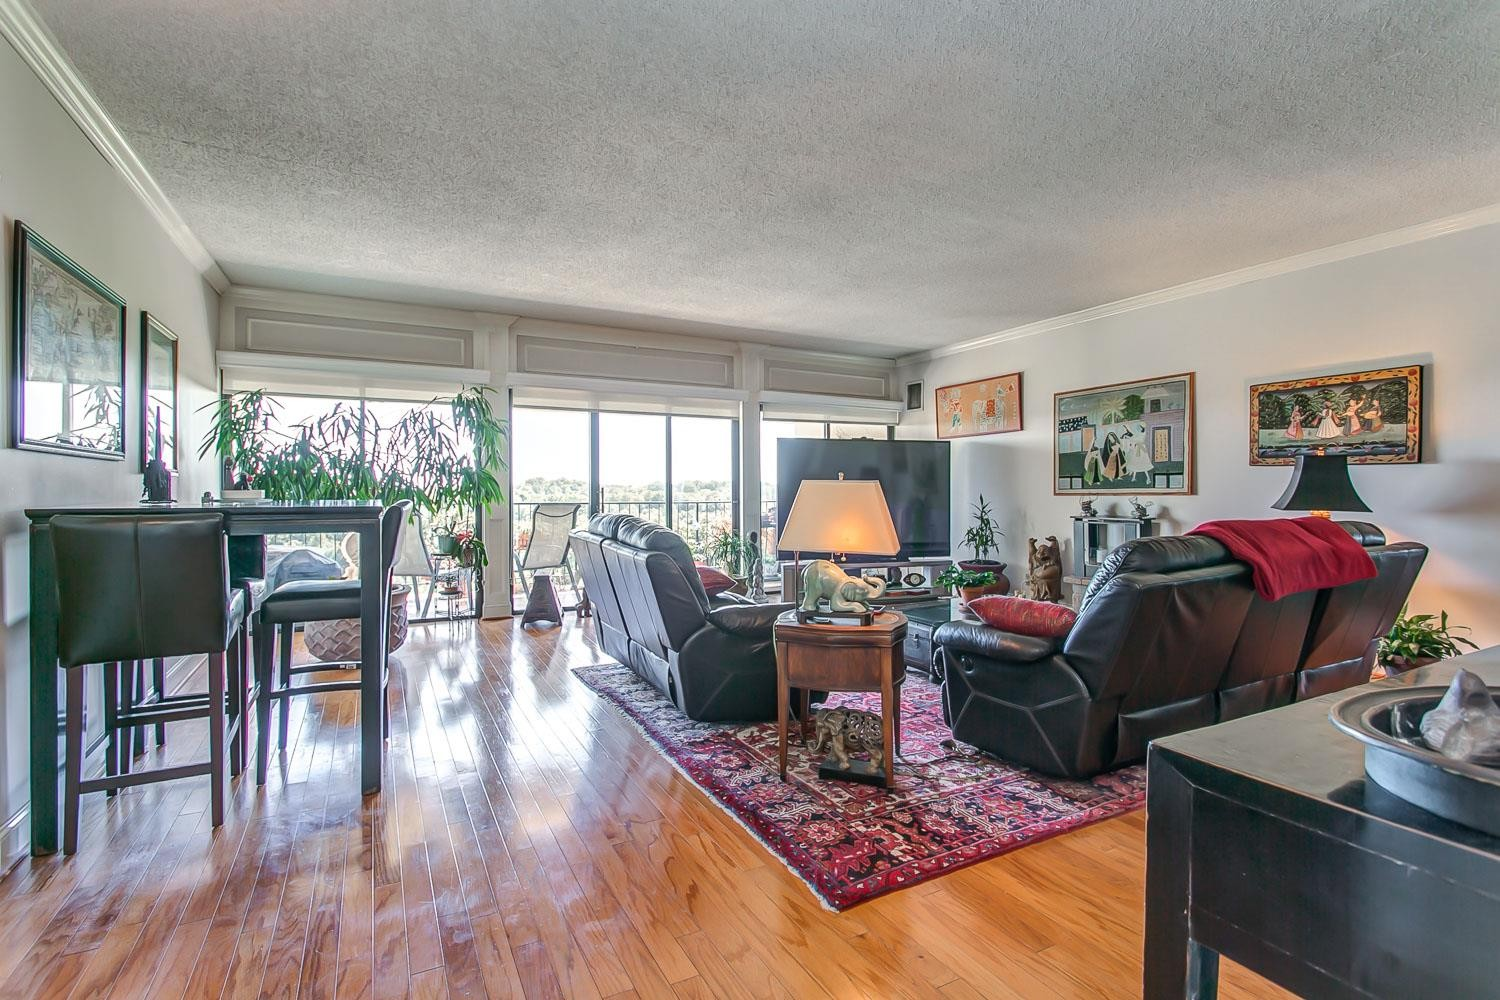 $489,000 - 3Br/3Ba -  for Sale in Wessex Towers, Nashville